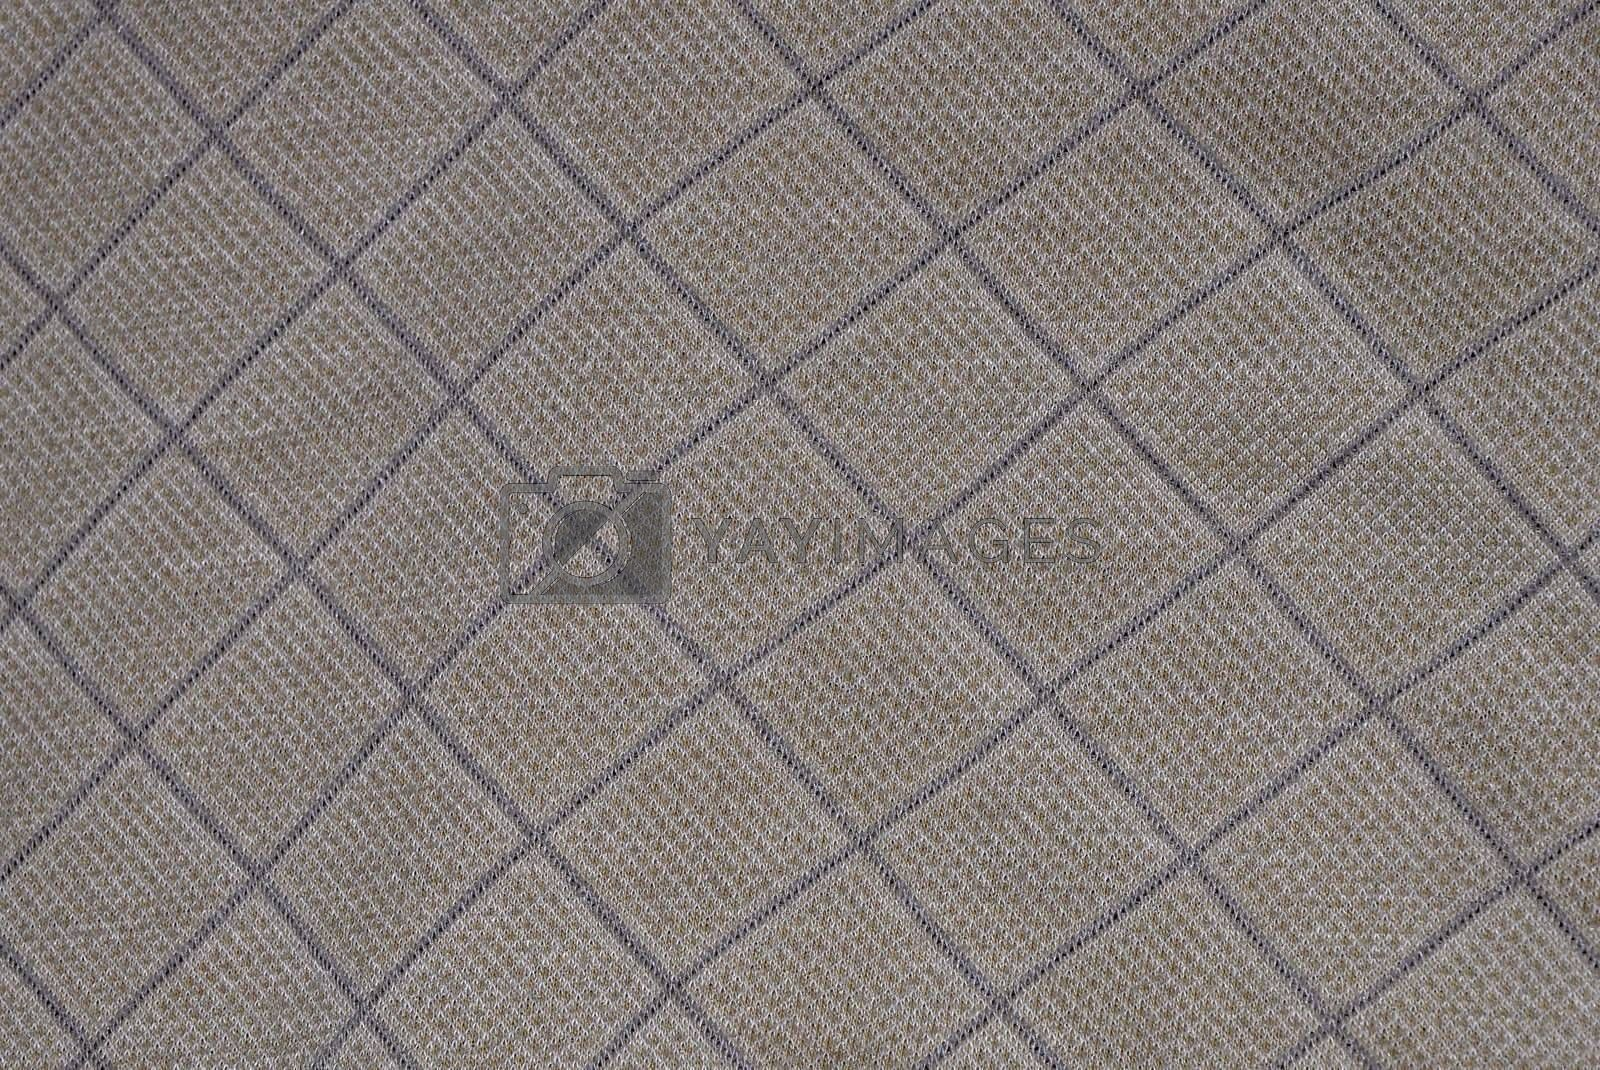 closeup view of a tan square abstract texture